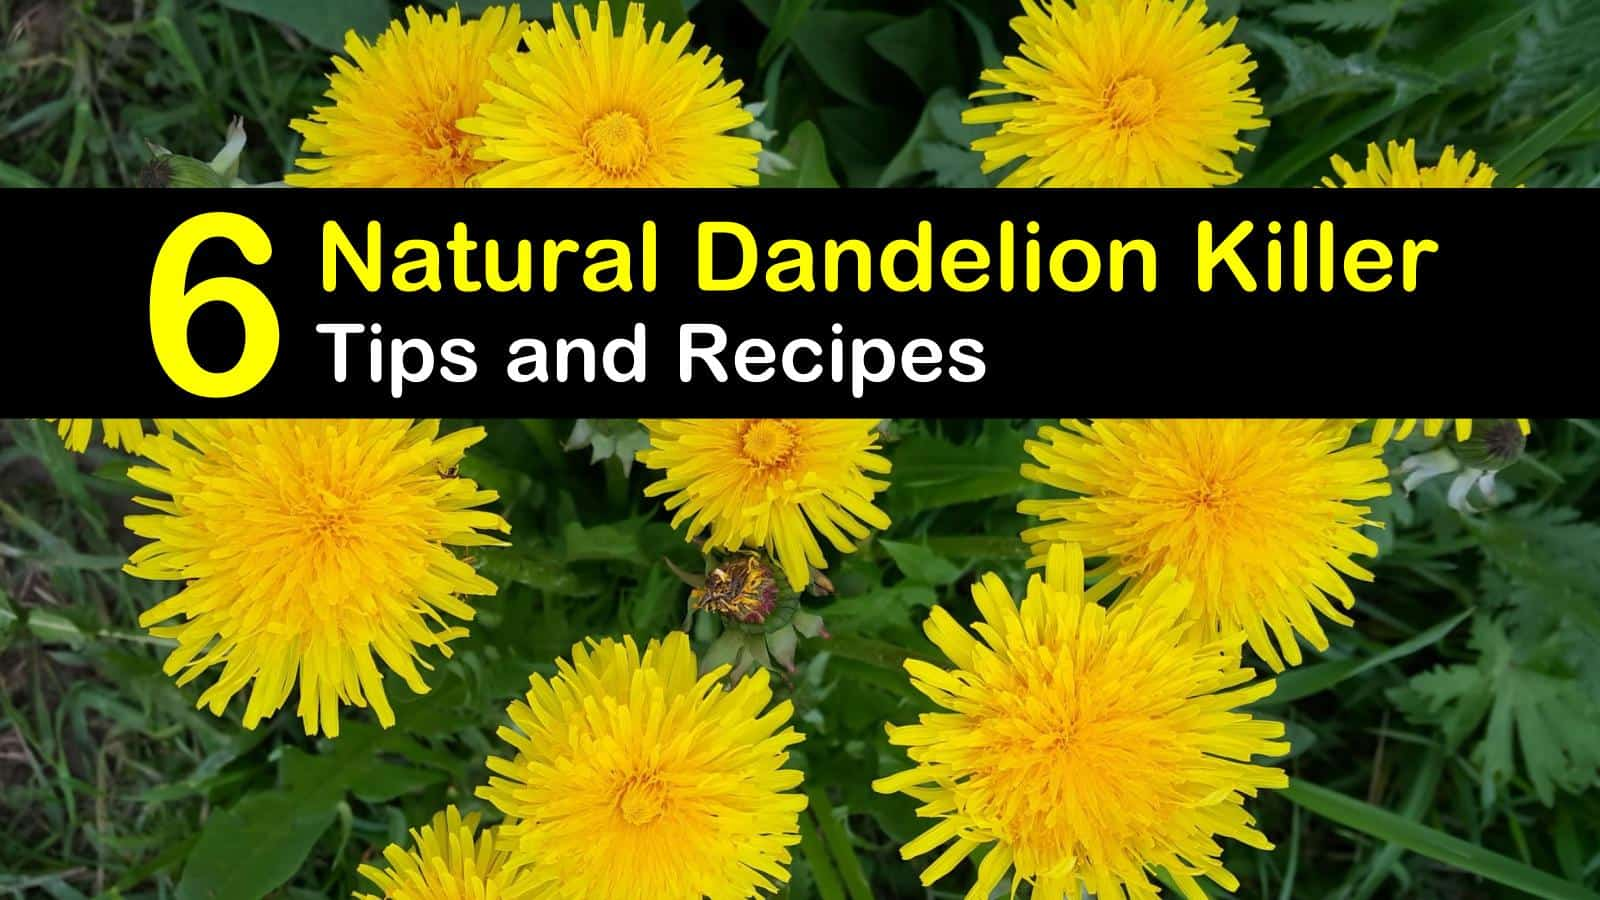 natural dandelion killer titleimg1